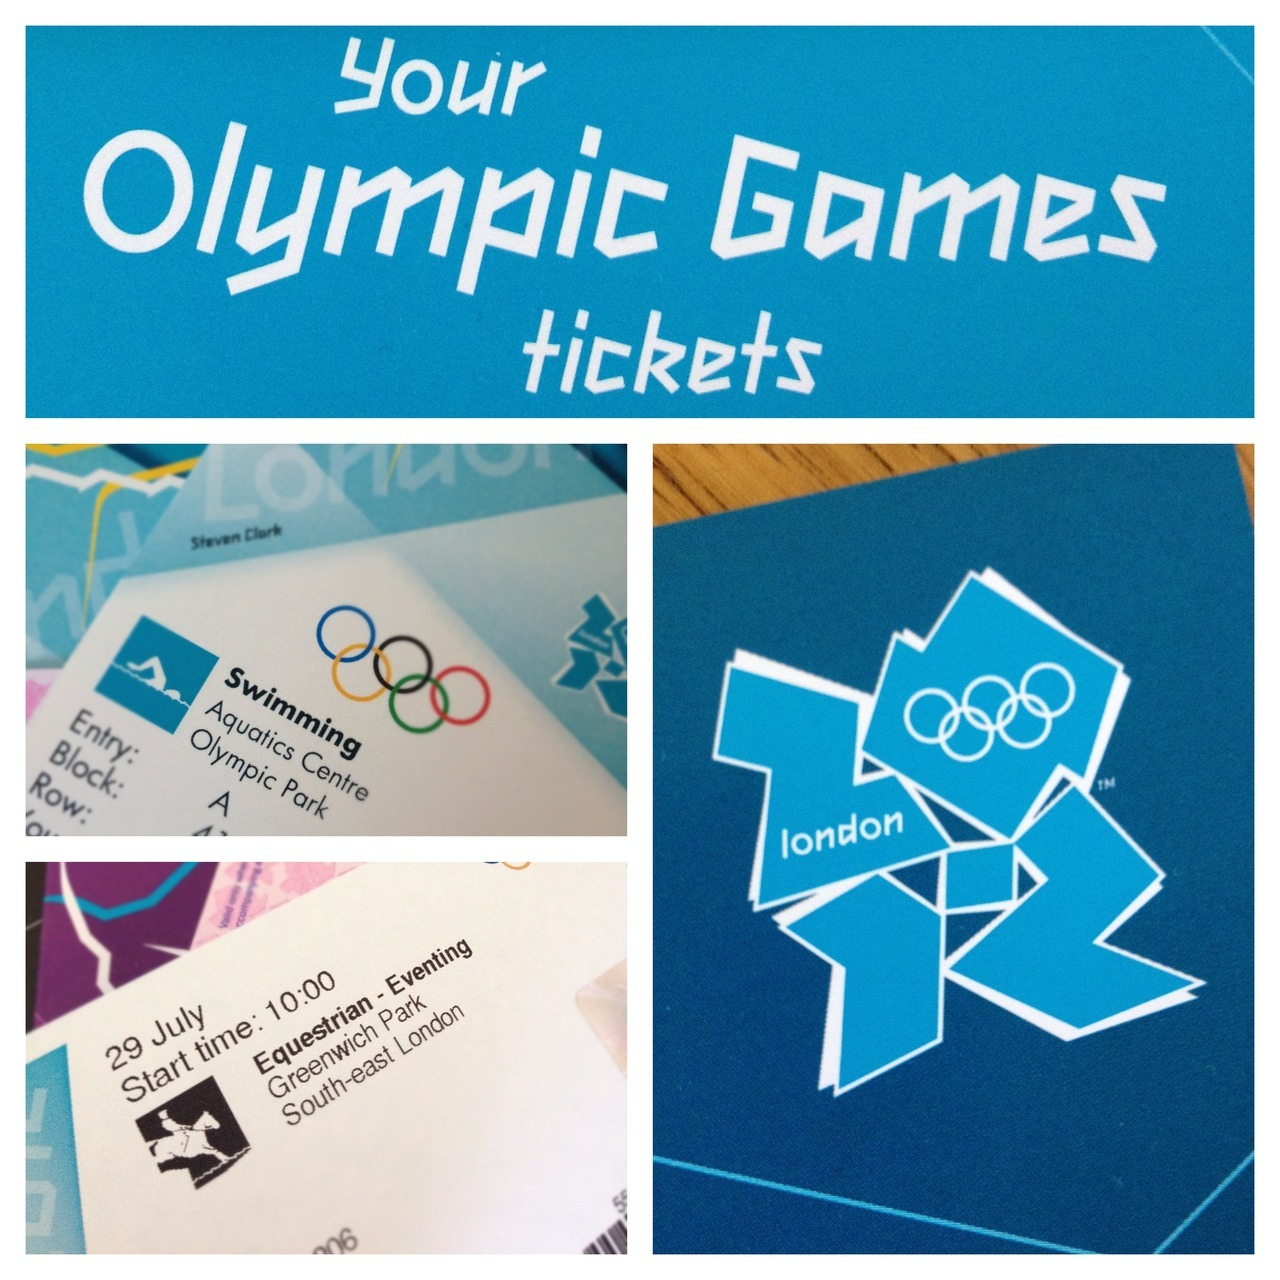 Our Olympics tickets have arrived a couple of weeks ago and me and my husband are pretty excited now - we are going to the first event next week (Equestrian Dressage)! We drove past the Olympic Stadium and Village on Friday night and everything looked amazing and ready for next Friday. I am so happy that this is all happening where I live!